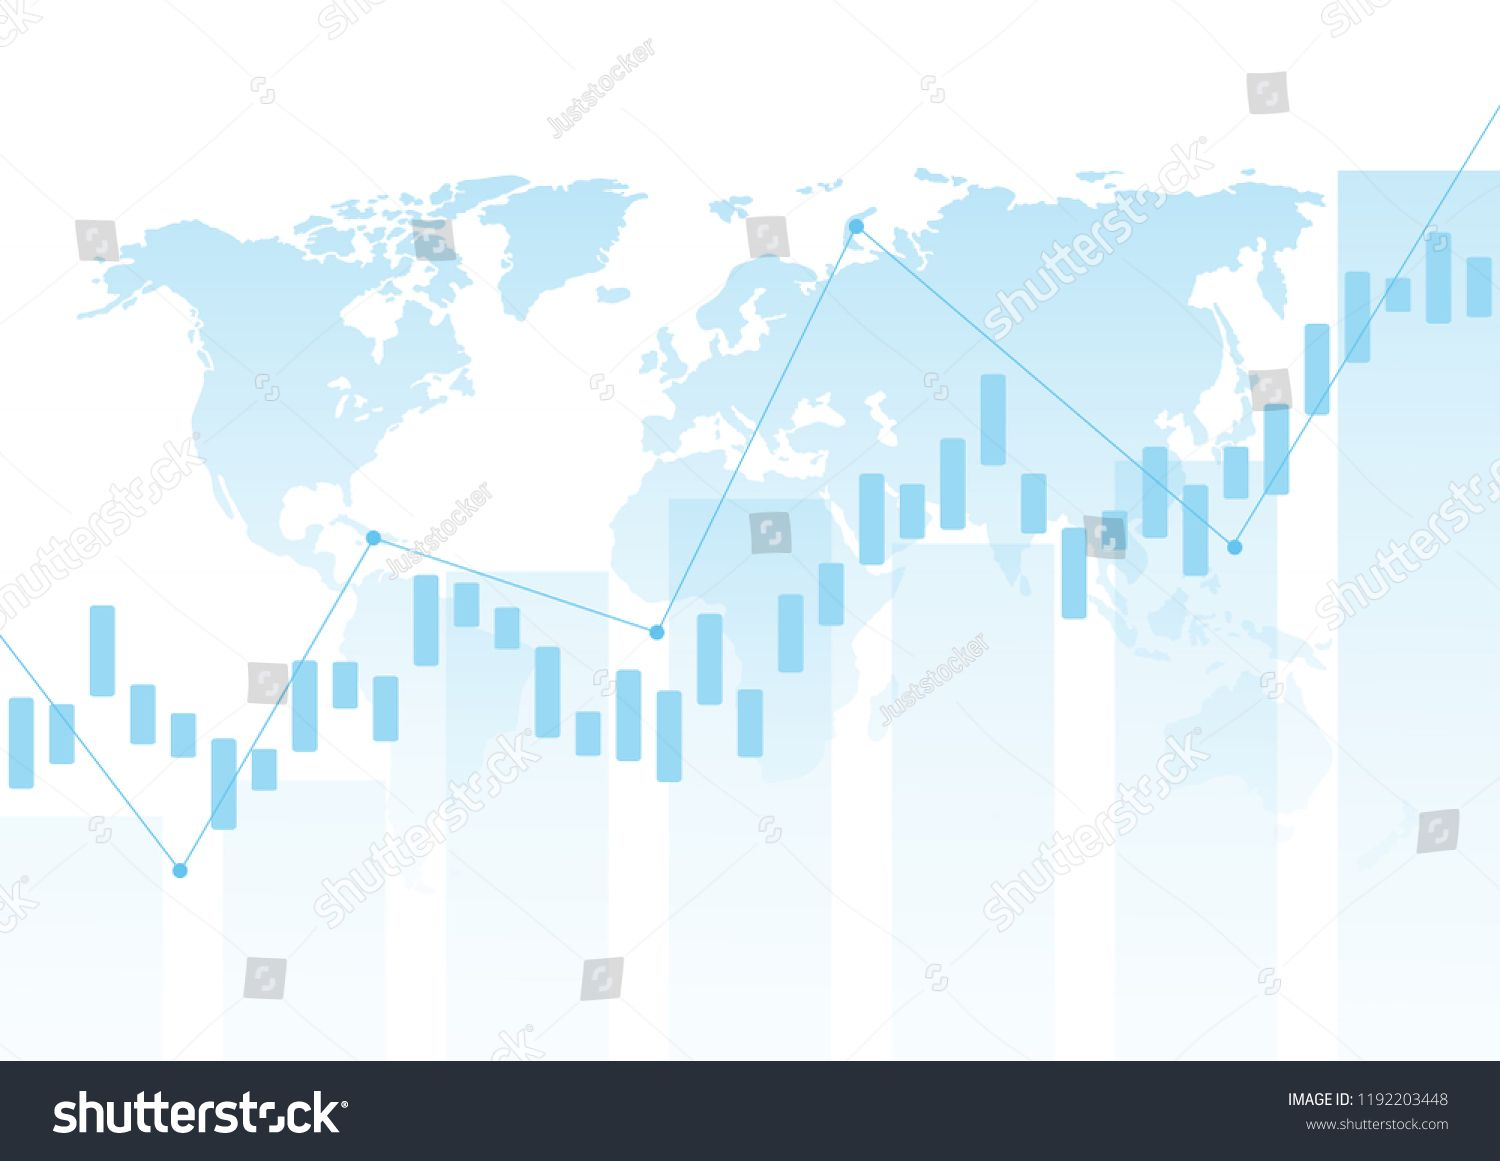 Abstract Background Stock Market And Exchange Stock Market Data Vector Illustration Stock Market Abstrac Abstract Backgrounds Stock Market Stock Illustration